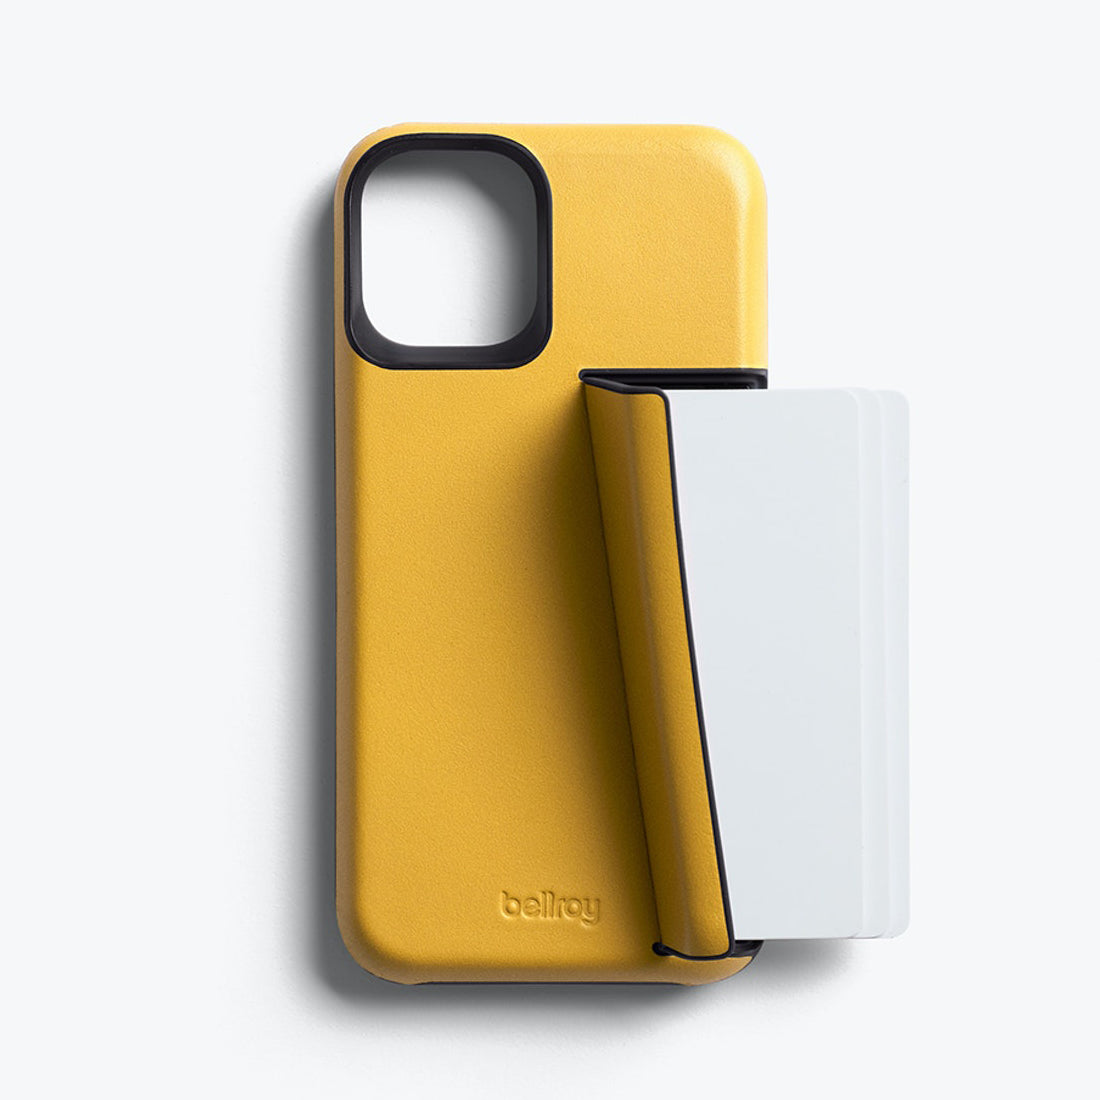 Bellroy 3-Card Genuine Leather Wallet Case For iPhone iPhone 12 mini - LEMON